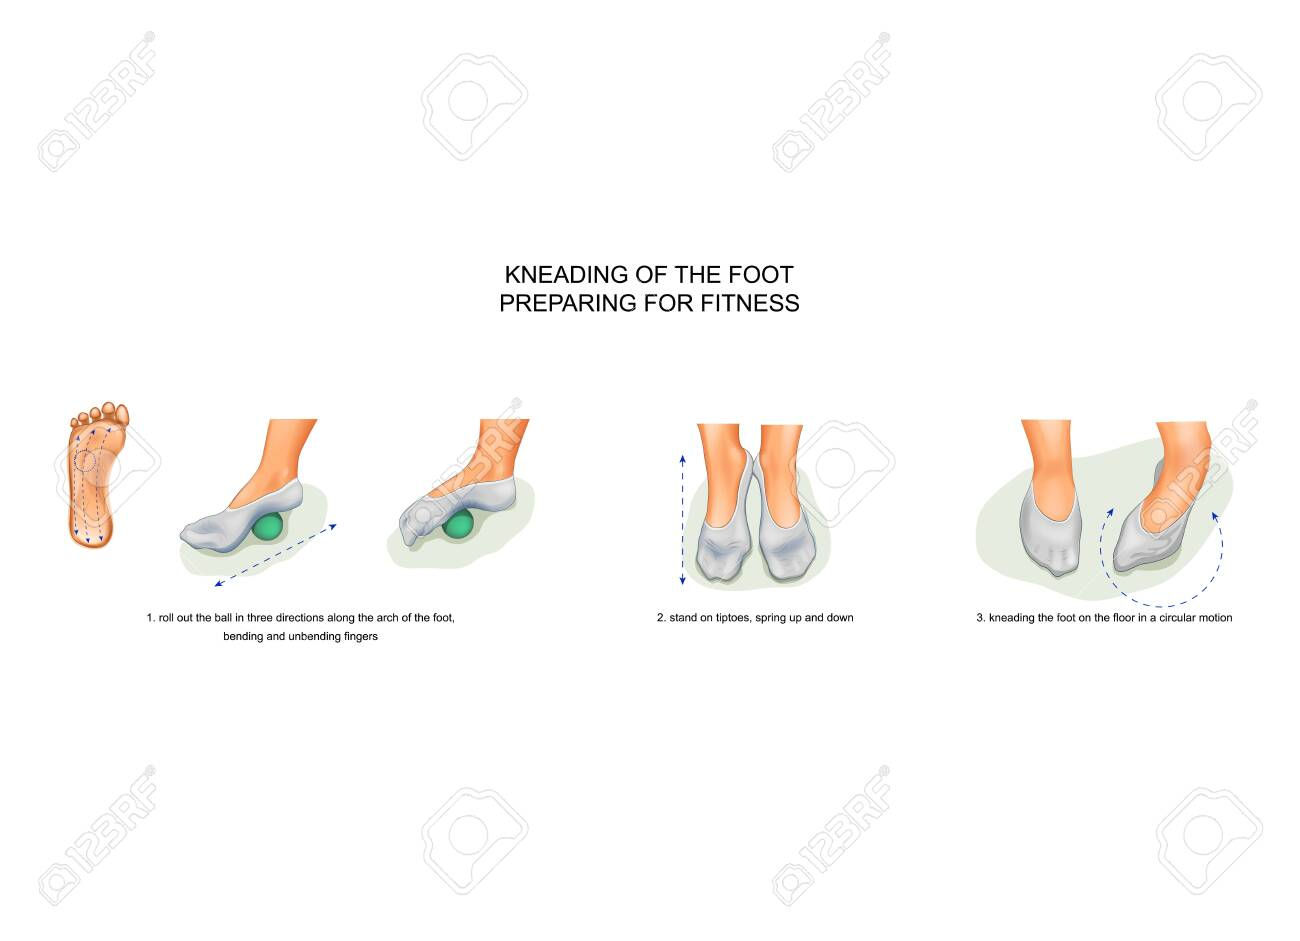 kneading of the foot, preparing for fitness - 133719274